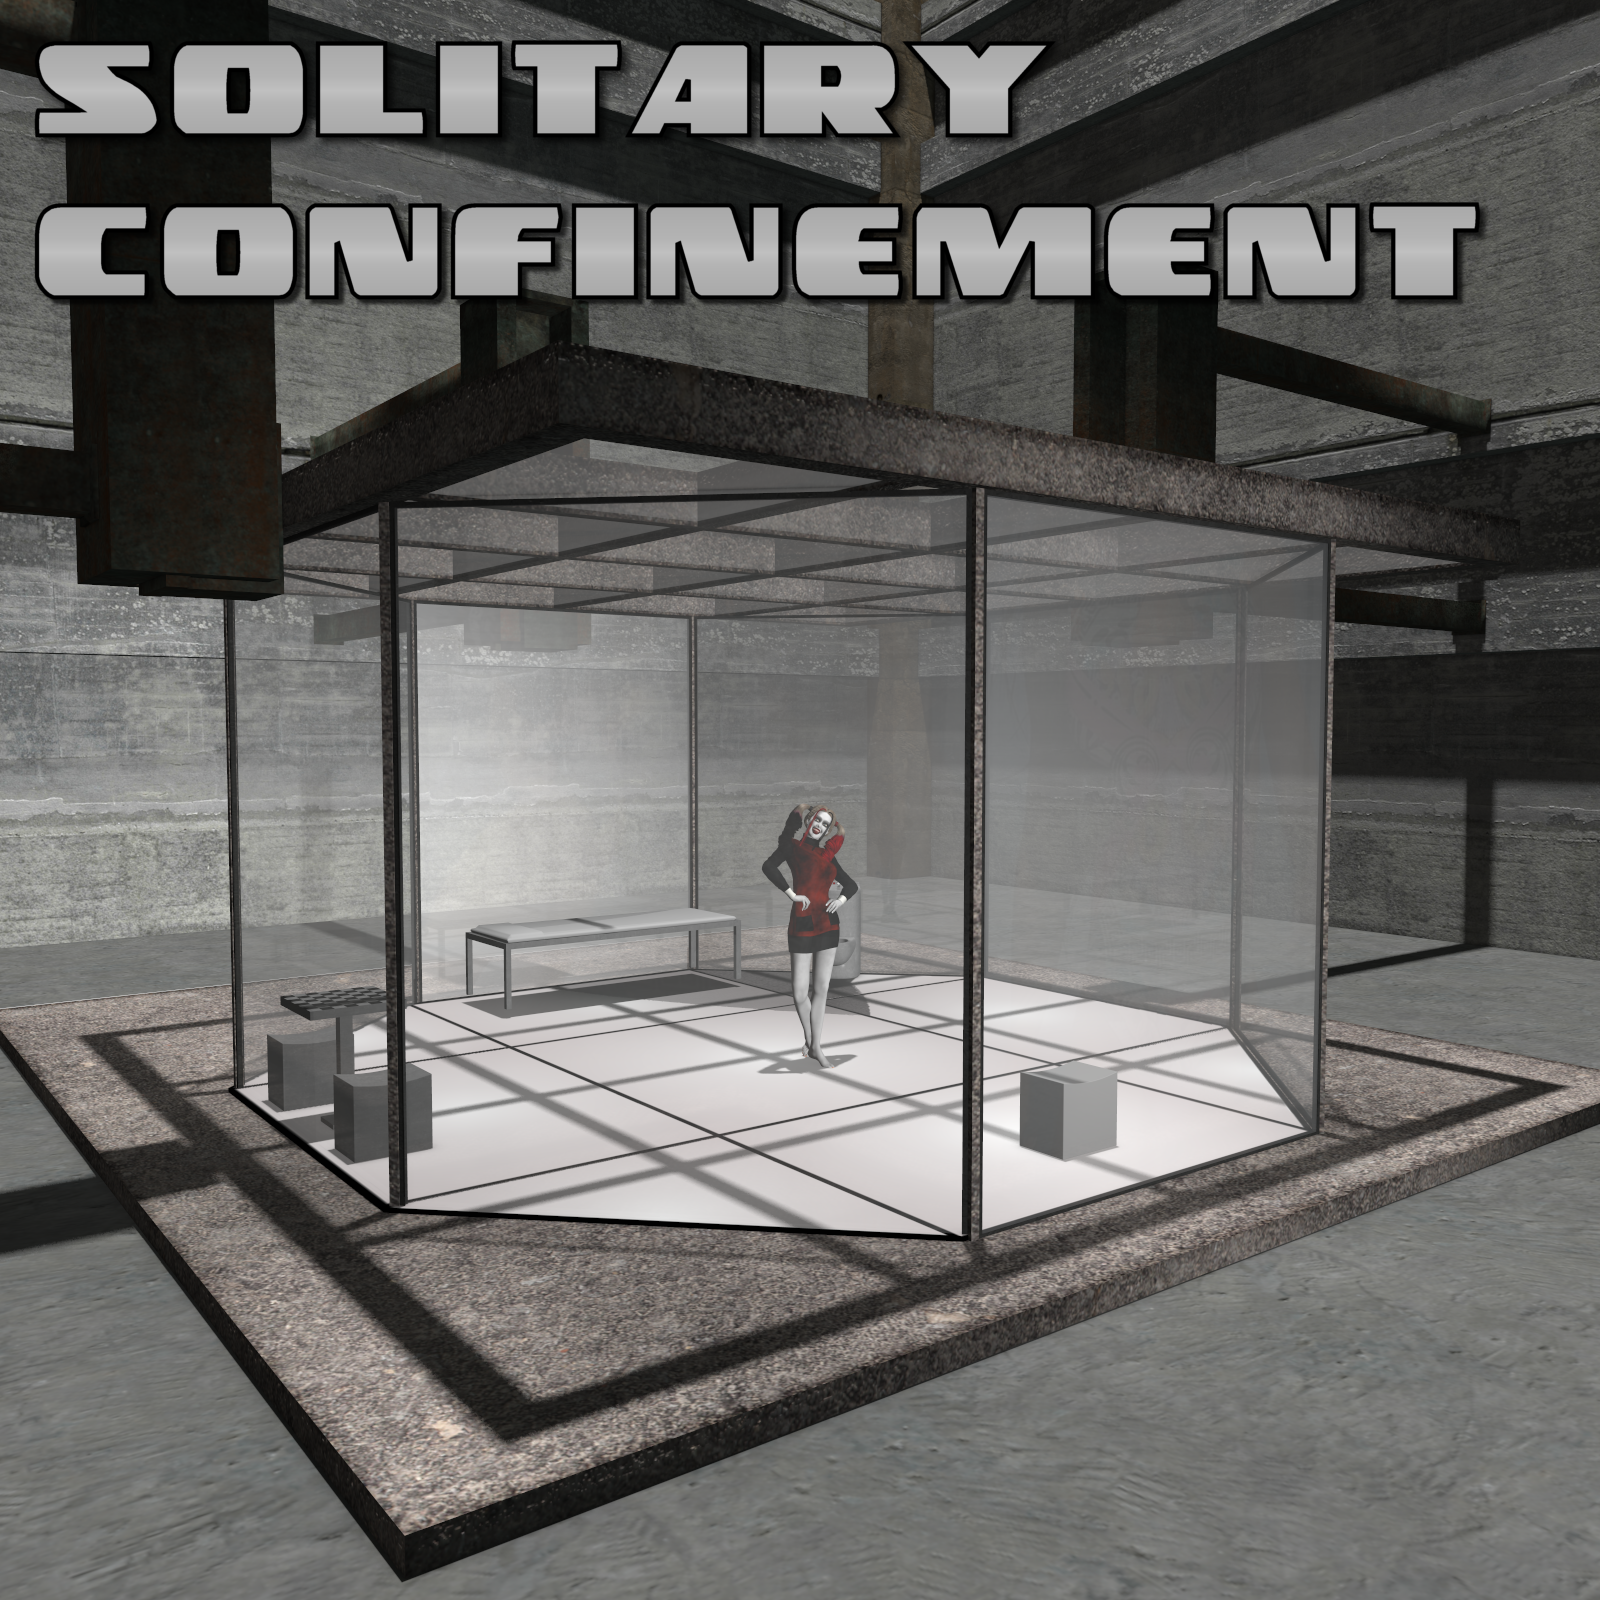 Solitary Confinement Unit for Poser 7+ - Extended License